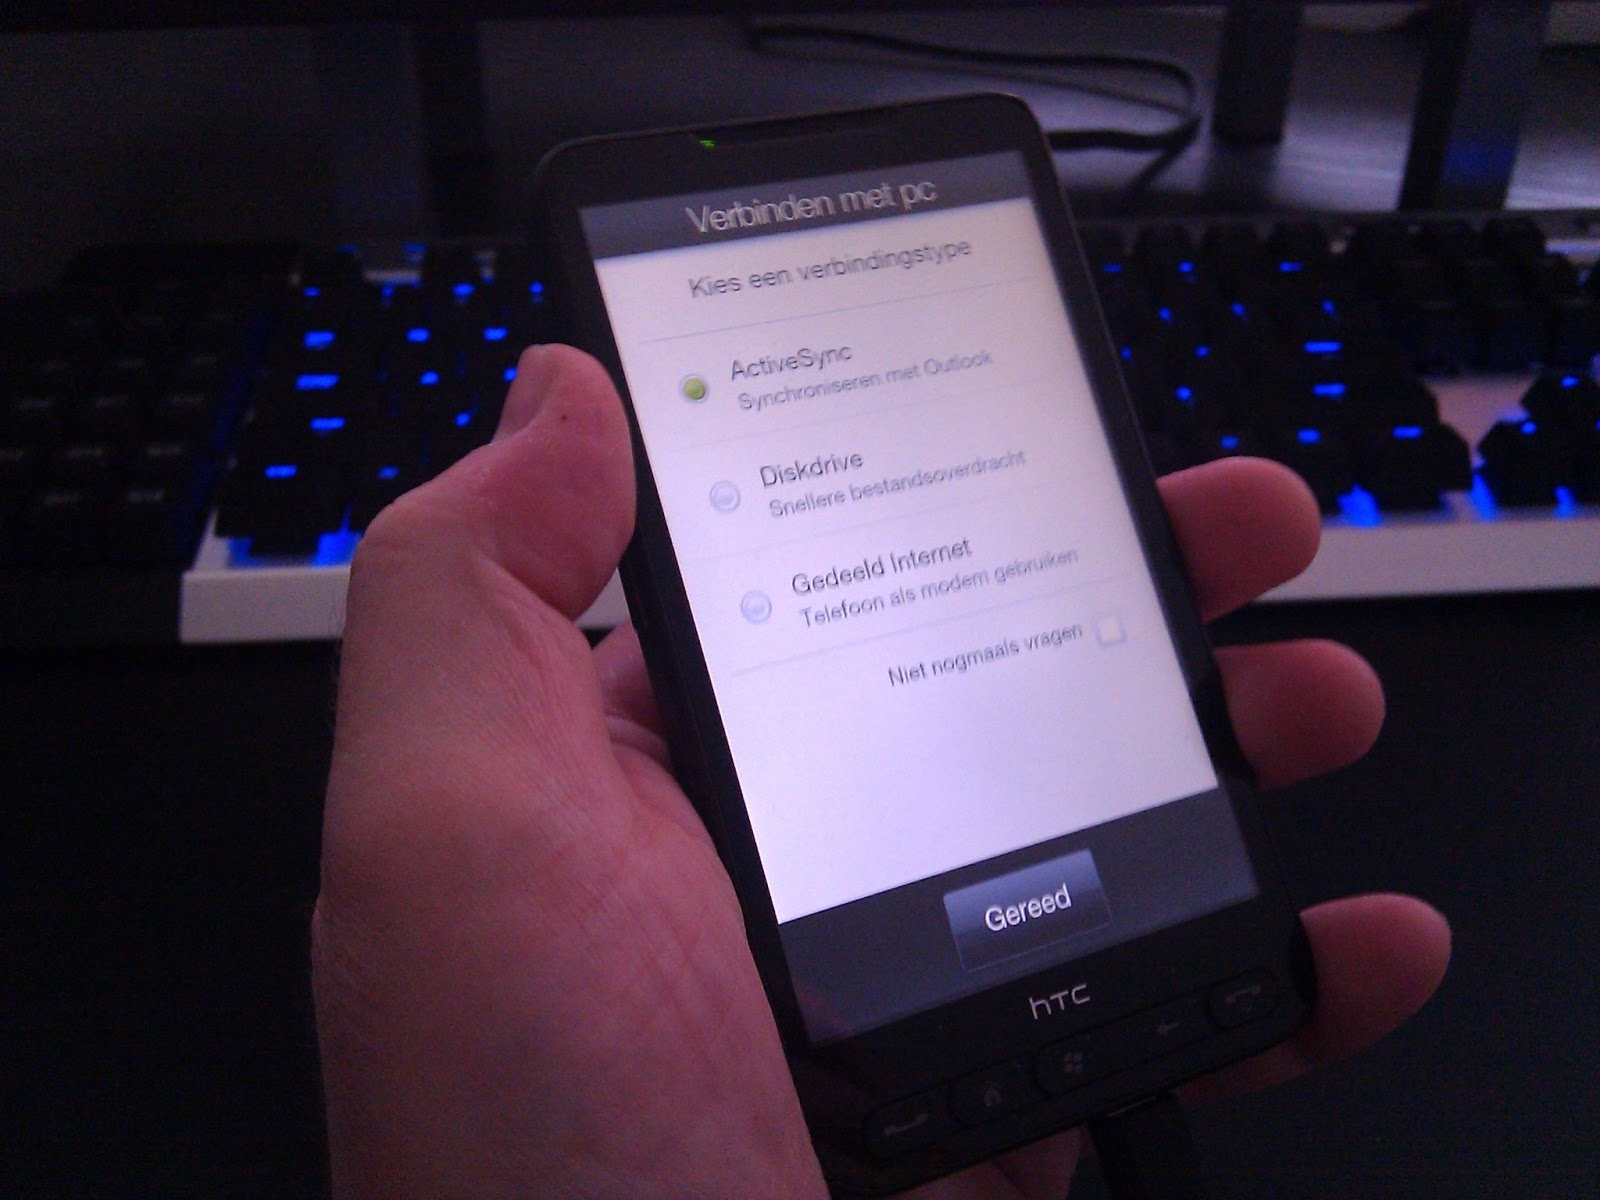 activesync htc hd2